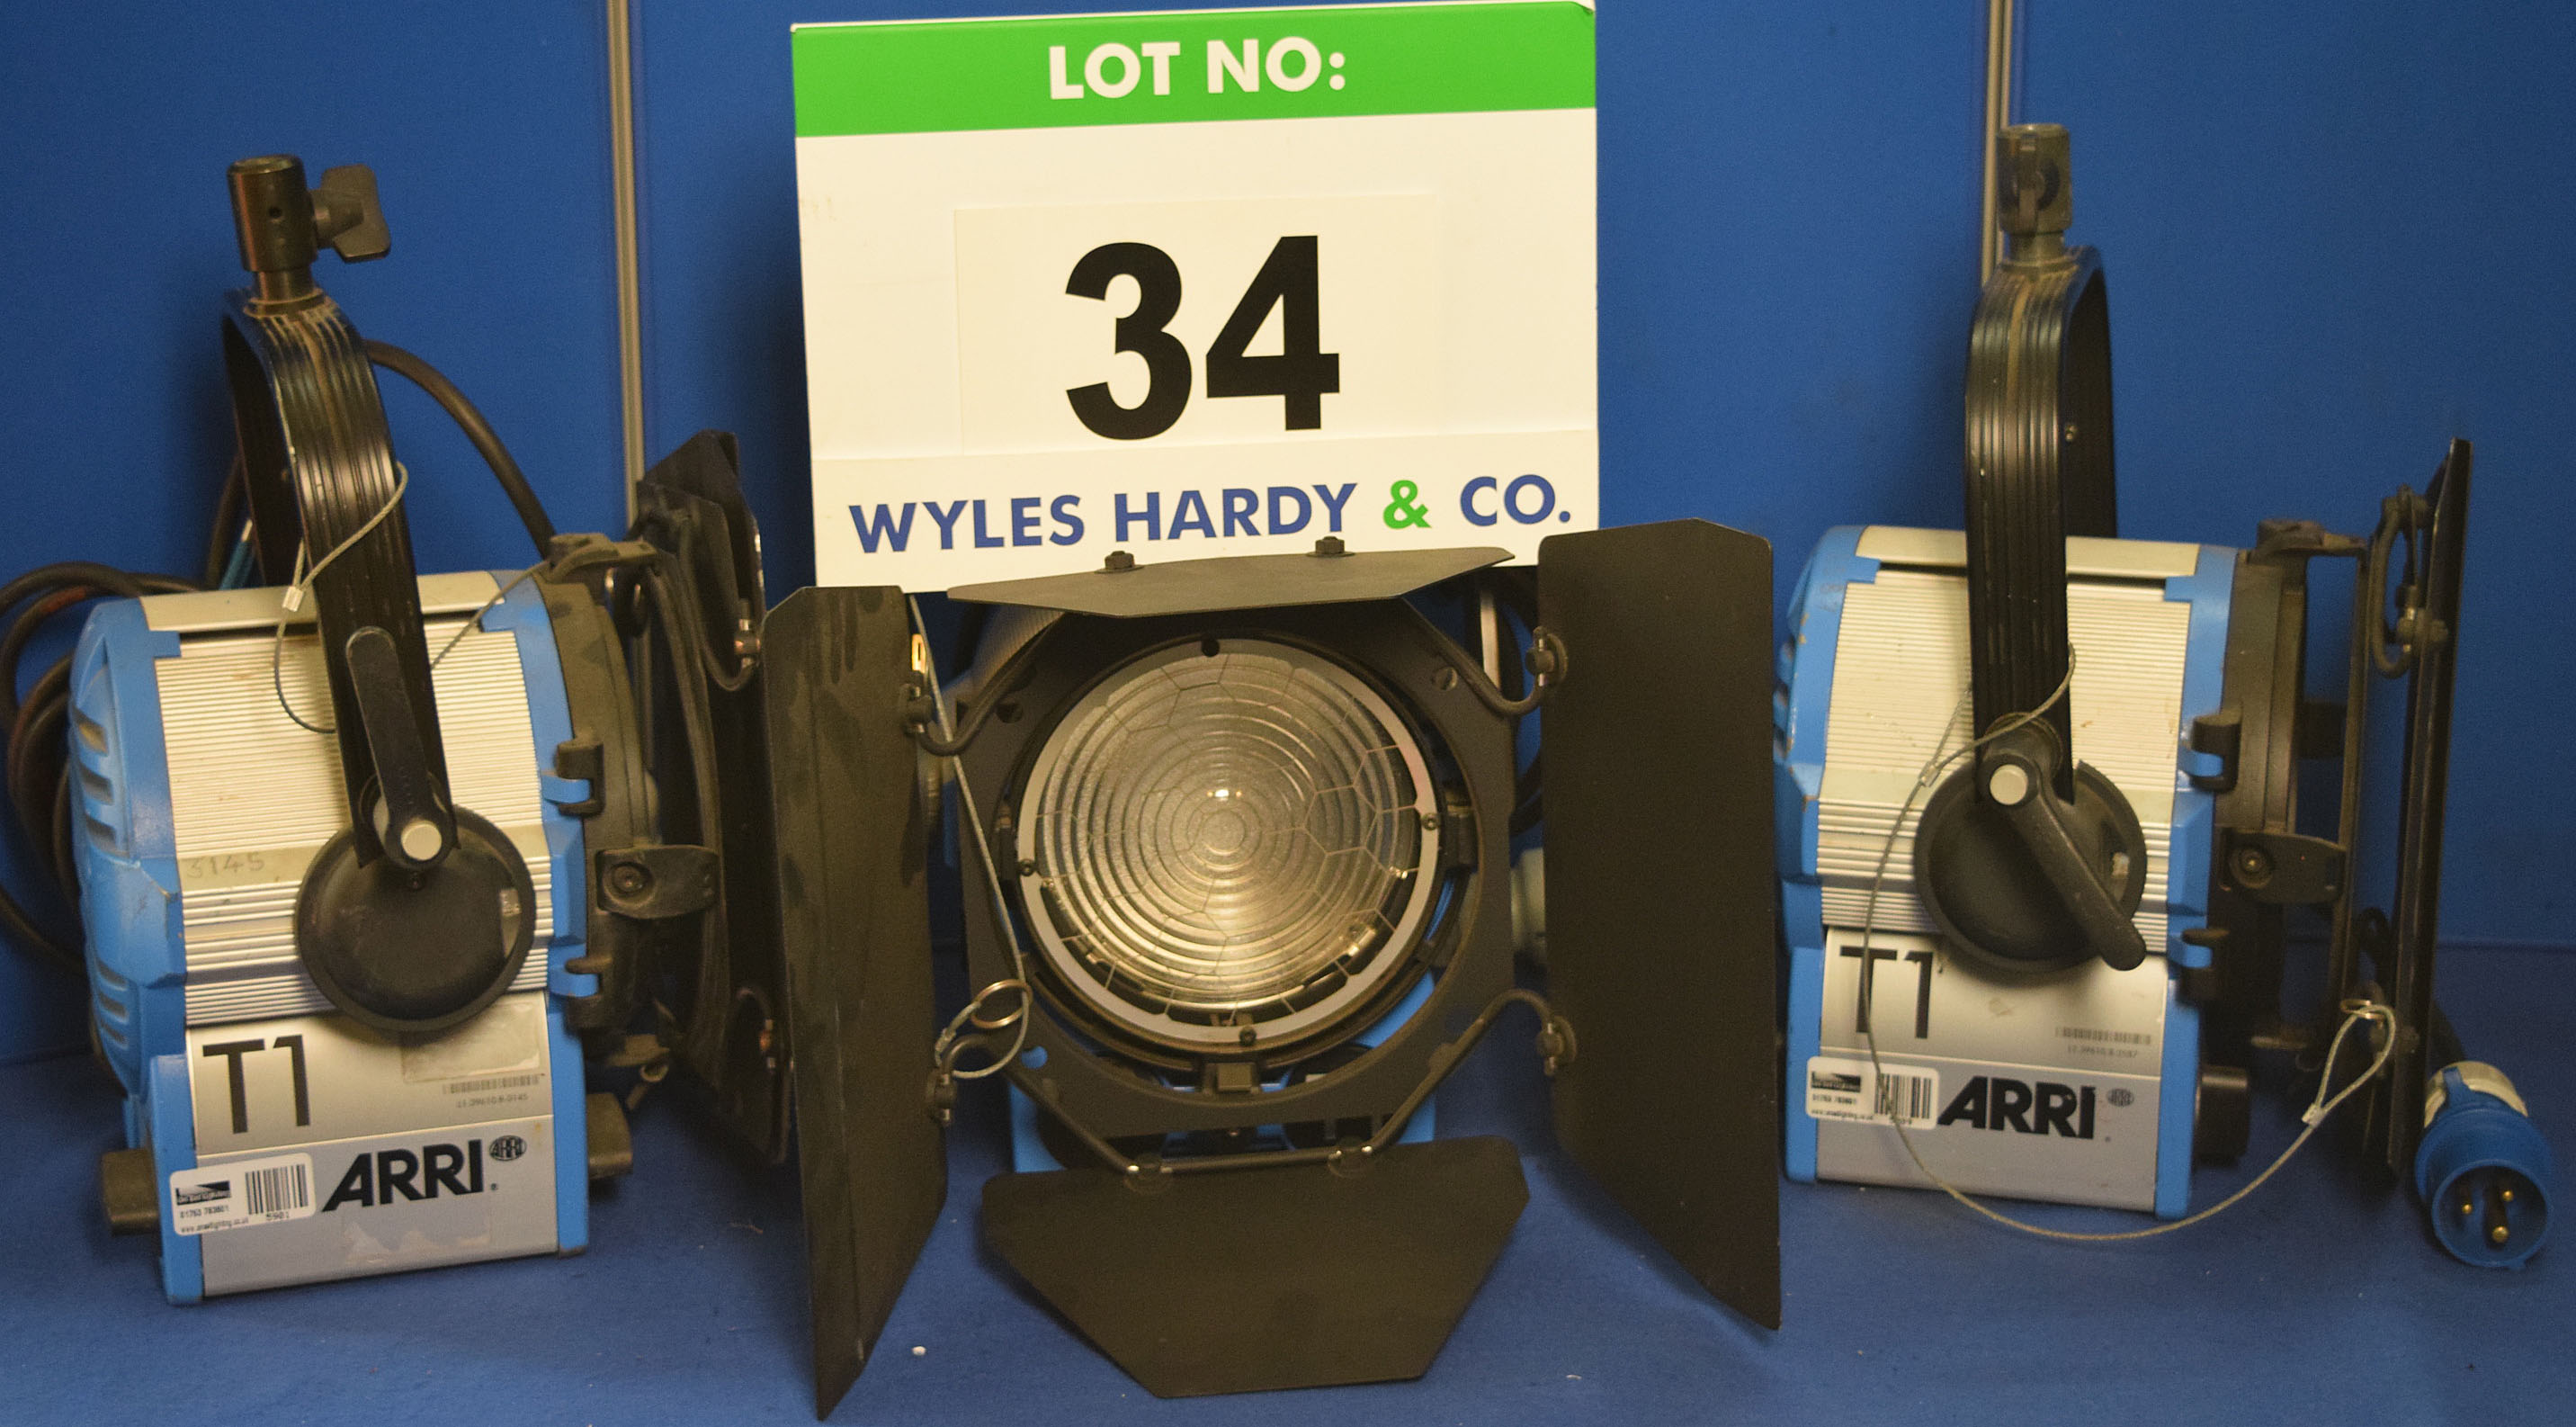 Lot 34 - Three ARRI T1 1000W Lights each with fitted Barn Doors, Stirrup Mount and Switched Power Feed